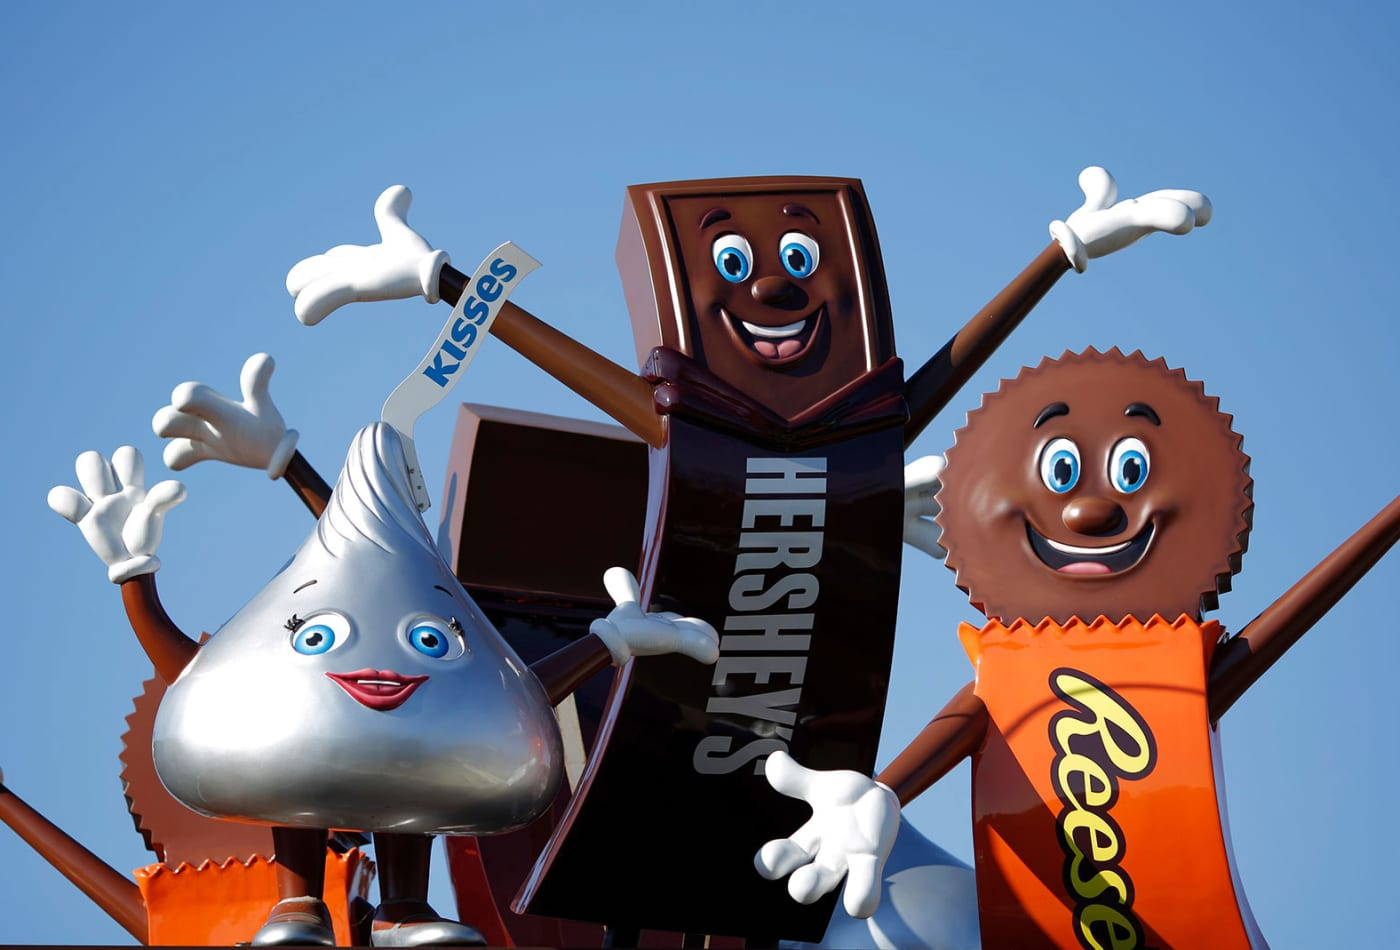 Not just a chocolate company: Hershey plots its future in snacking